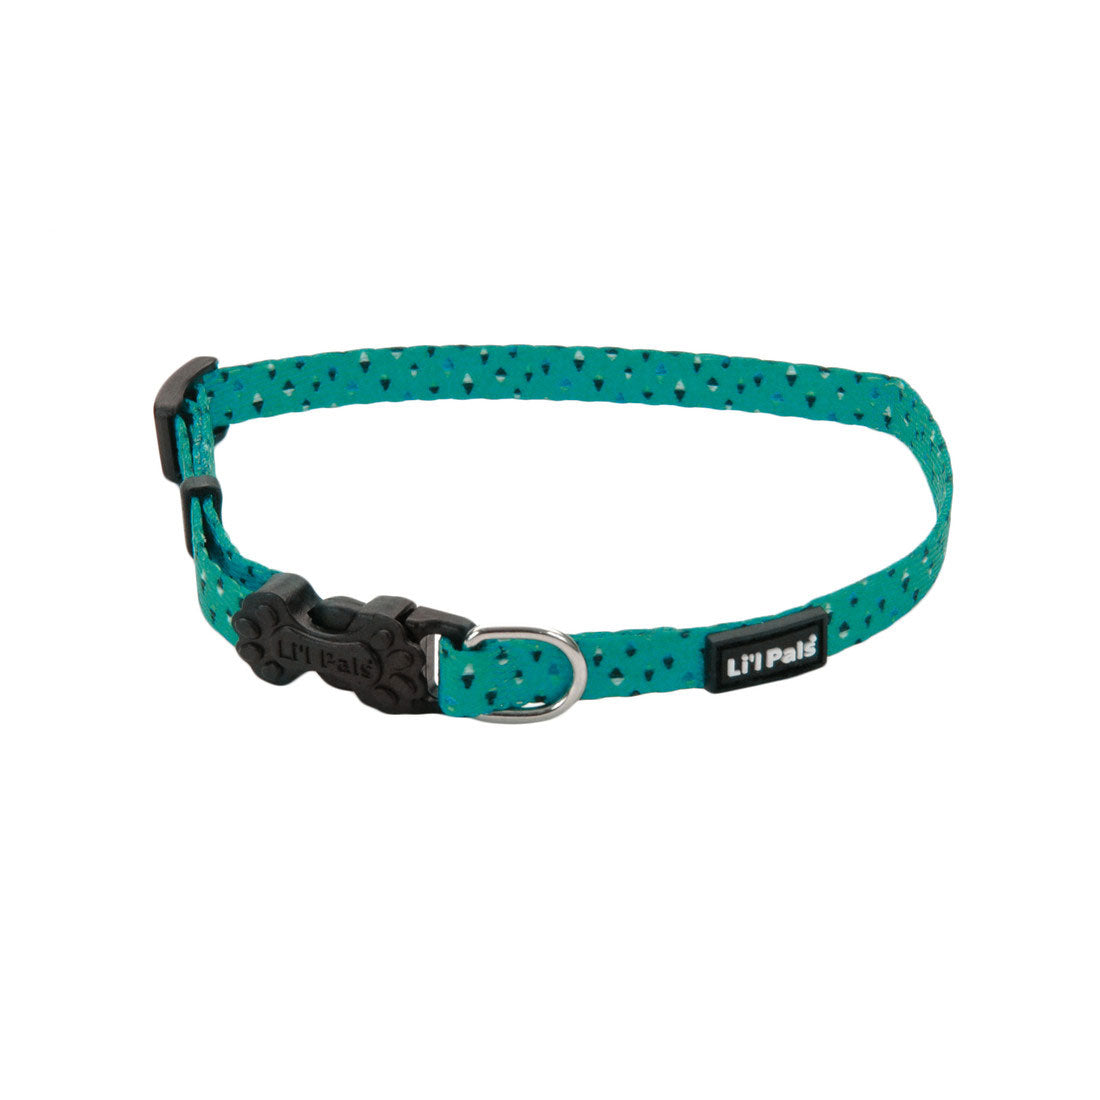 Li'l Pals Adjustable Collar Teal and Grey Diamonds - Collares para Perros